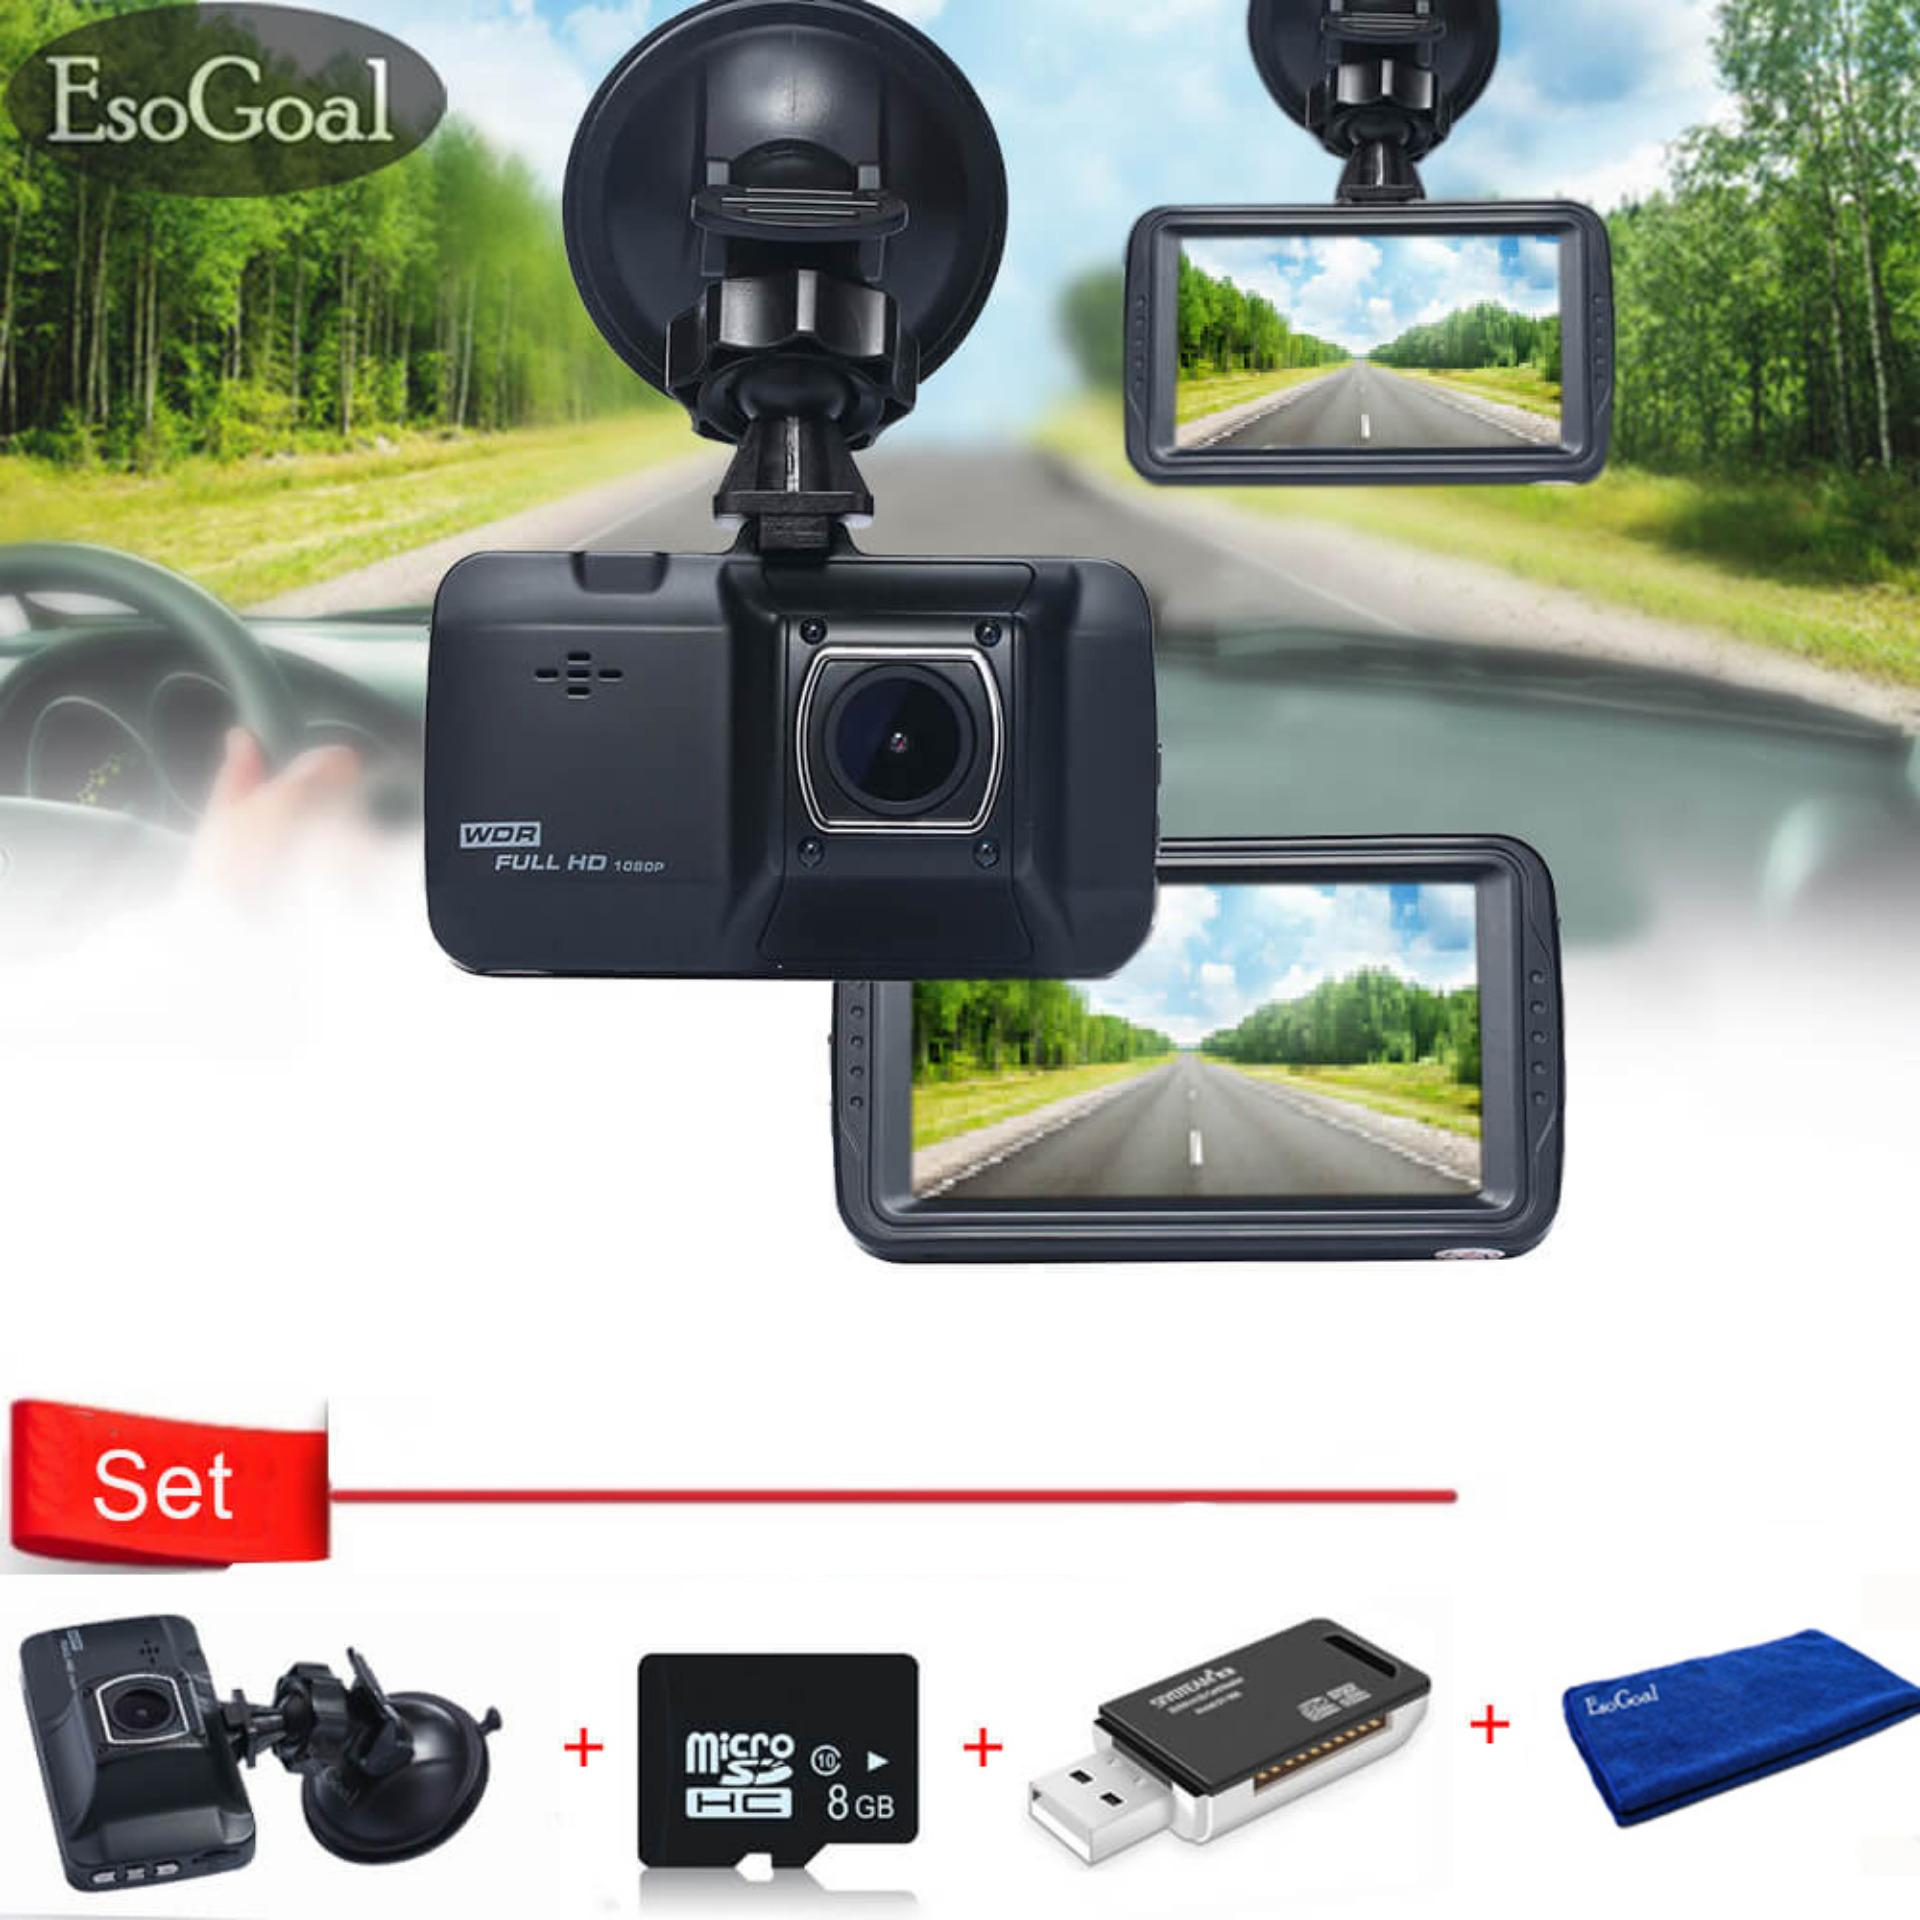 Jual Esogoal 3 Ir Light Night Vision 1080P 120 Car Dvr On Dash Video Recorder G Sensor Vehicle Camera And Micro C 10 8G Memory Card And Usb 2 Sd Card Reader Original